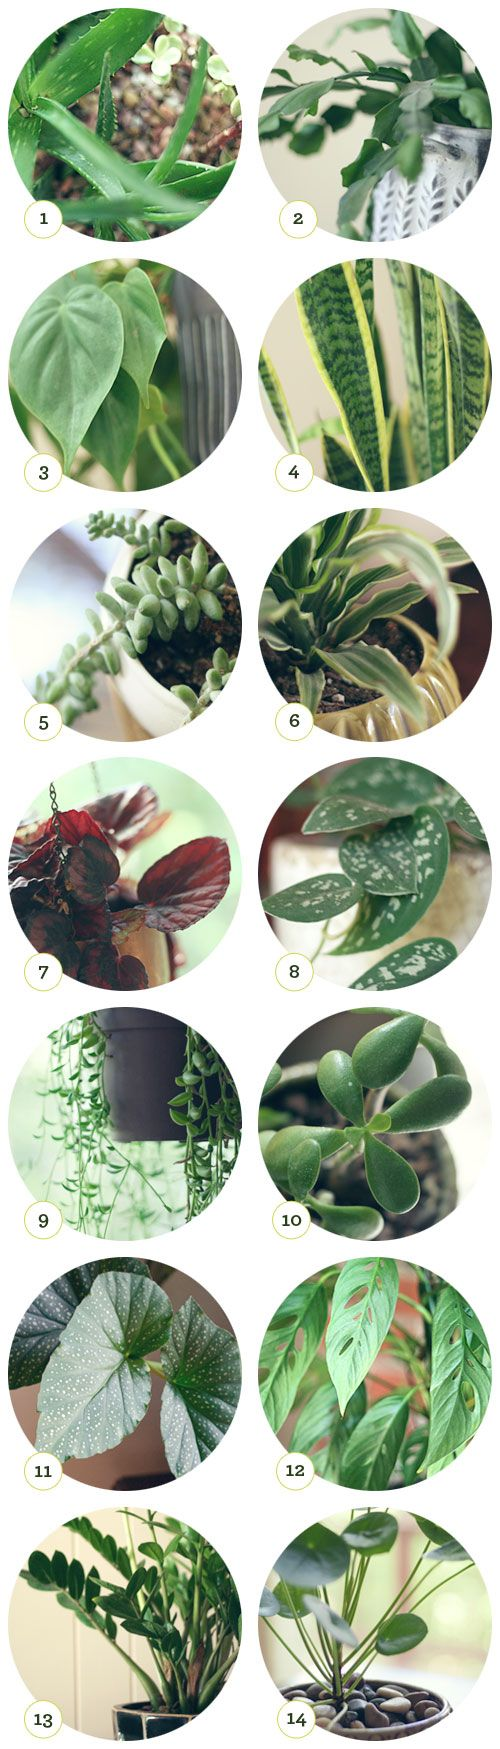 house plant identification - House Plant Identification Guide By Picture